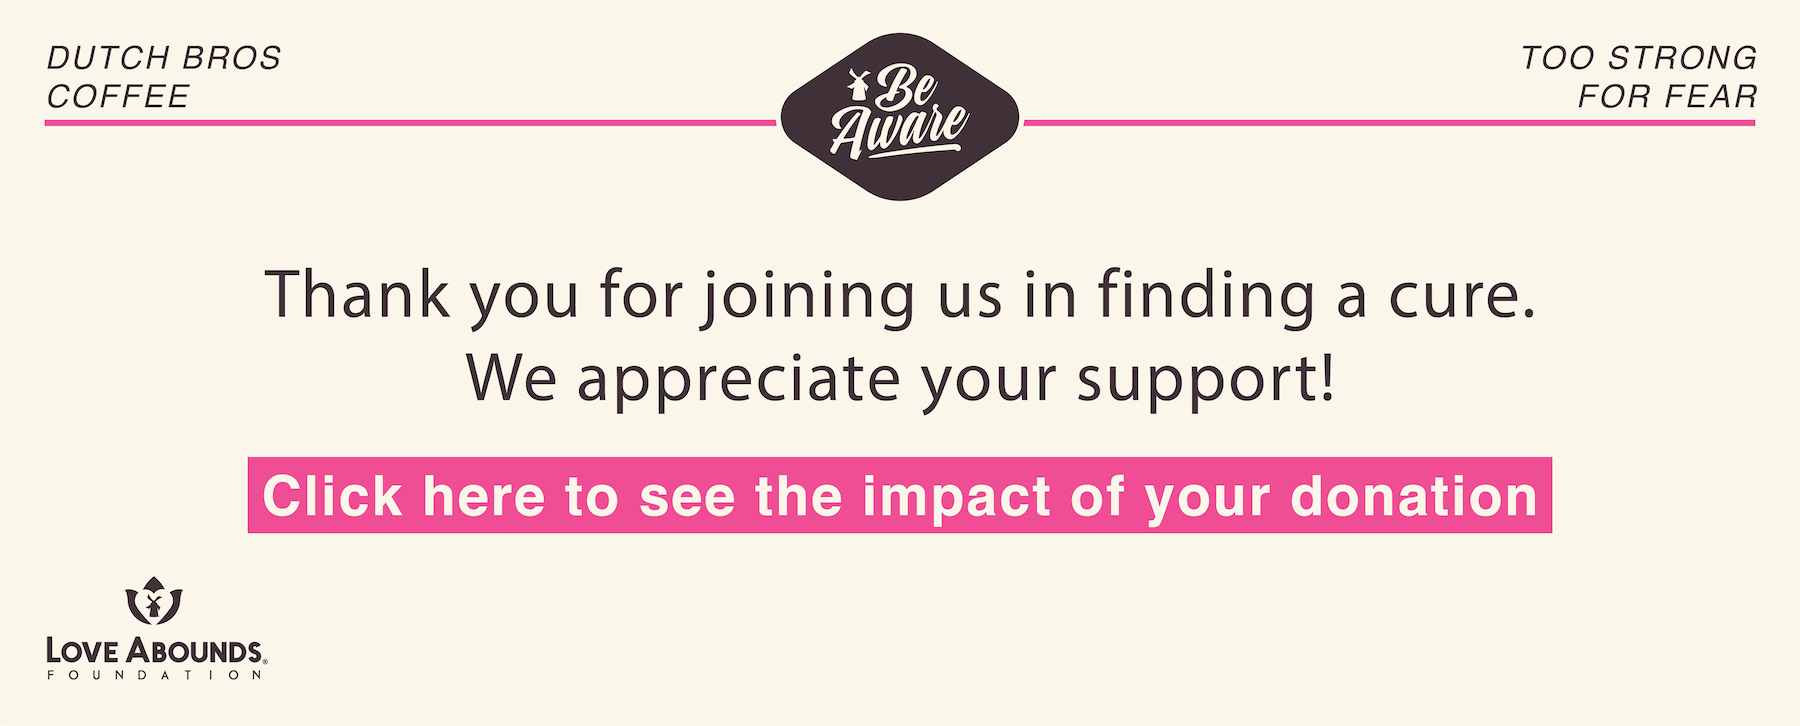 Thank tou for joining us in finding a cure. We appreciate your support! Click here to see the impact of your donation